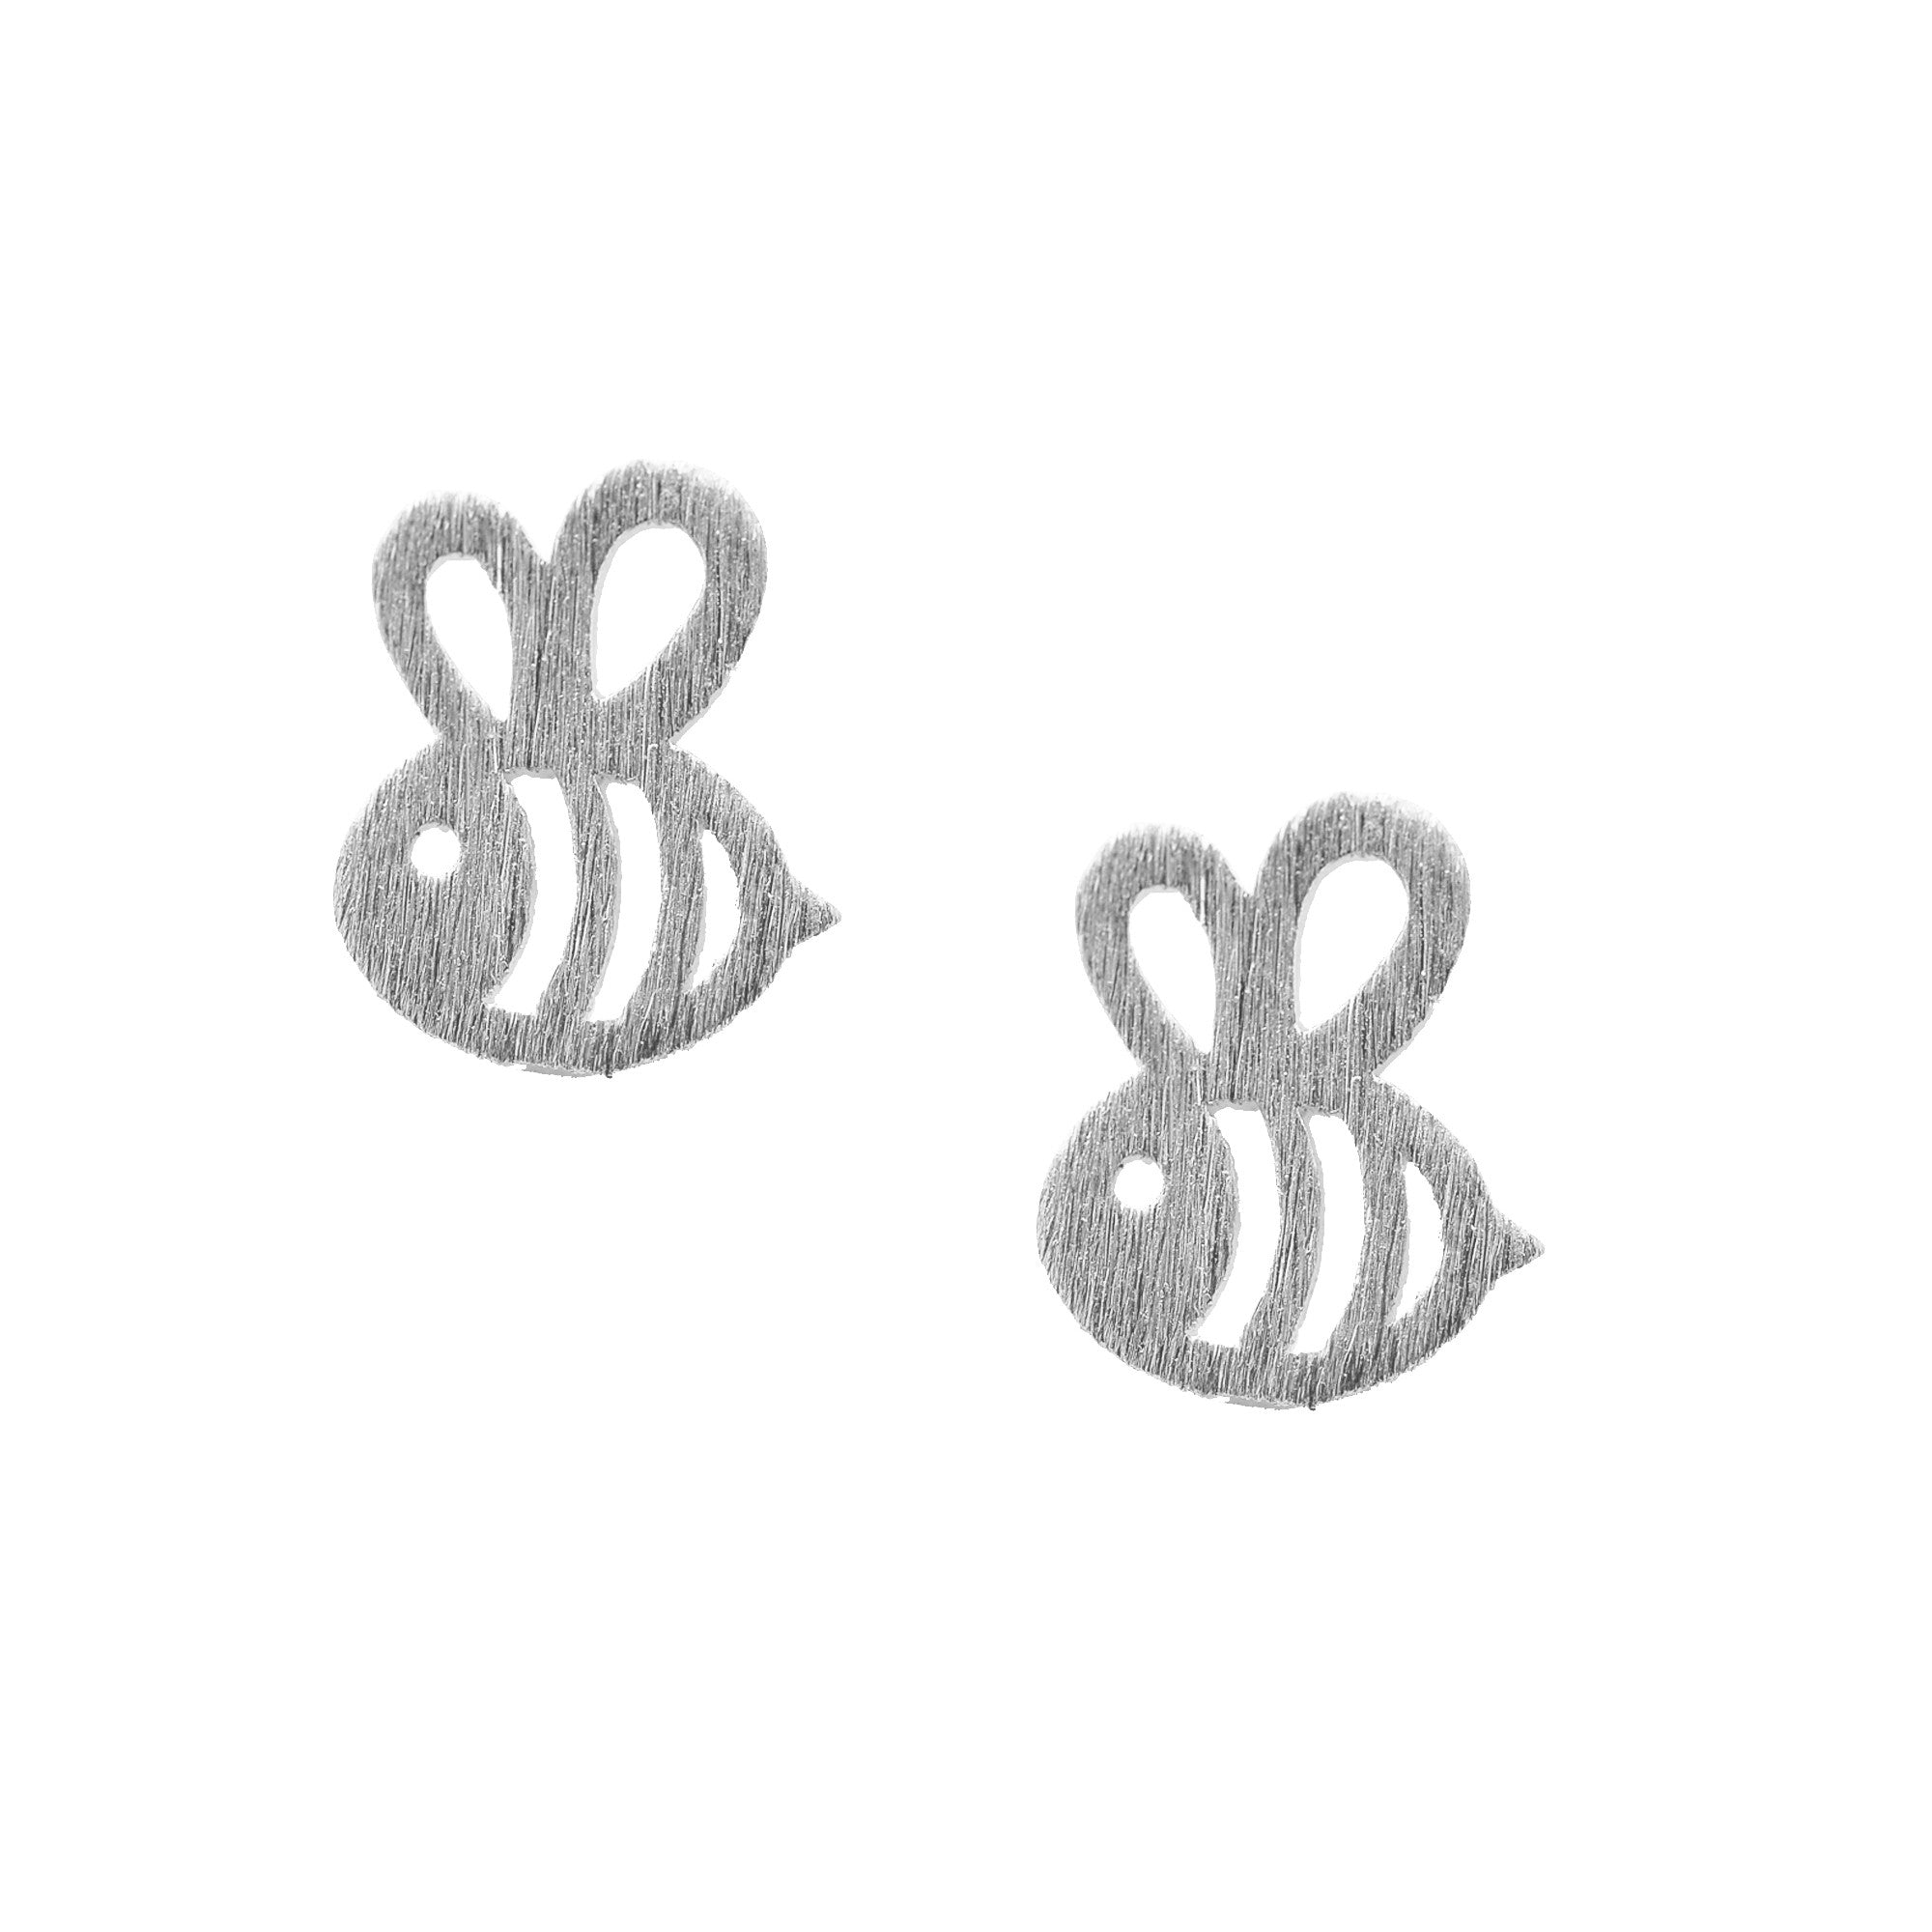 flying p stud jewellery bee fullxfull her insect cute kawaii for bumble colour gift gold small lbkm earring il earrings